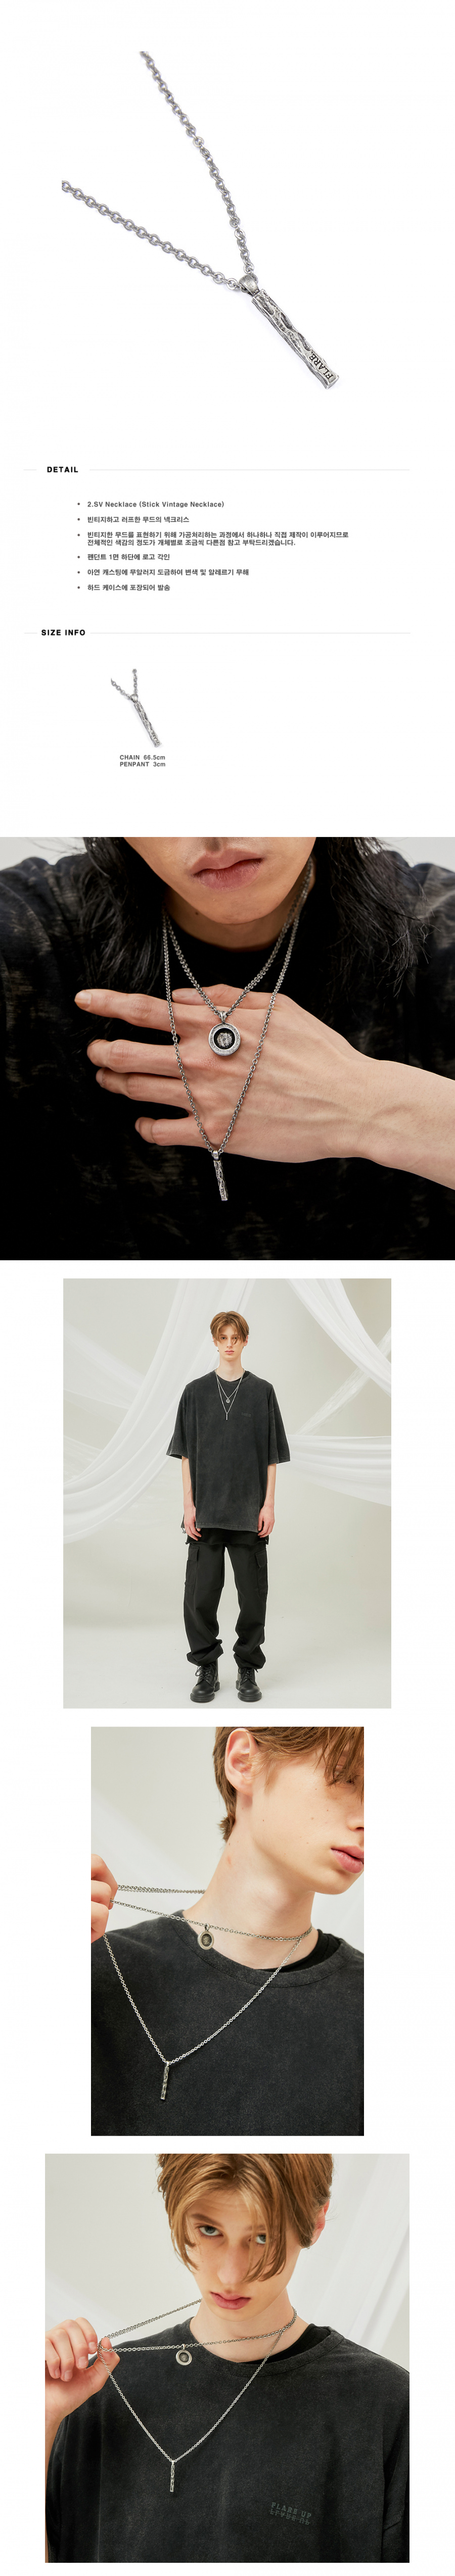 플레어업(FLAREUP) 2.SV Necklace (FL-702)